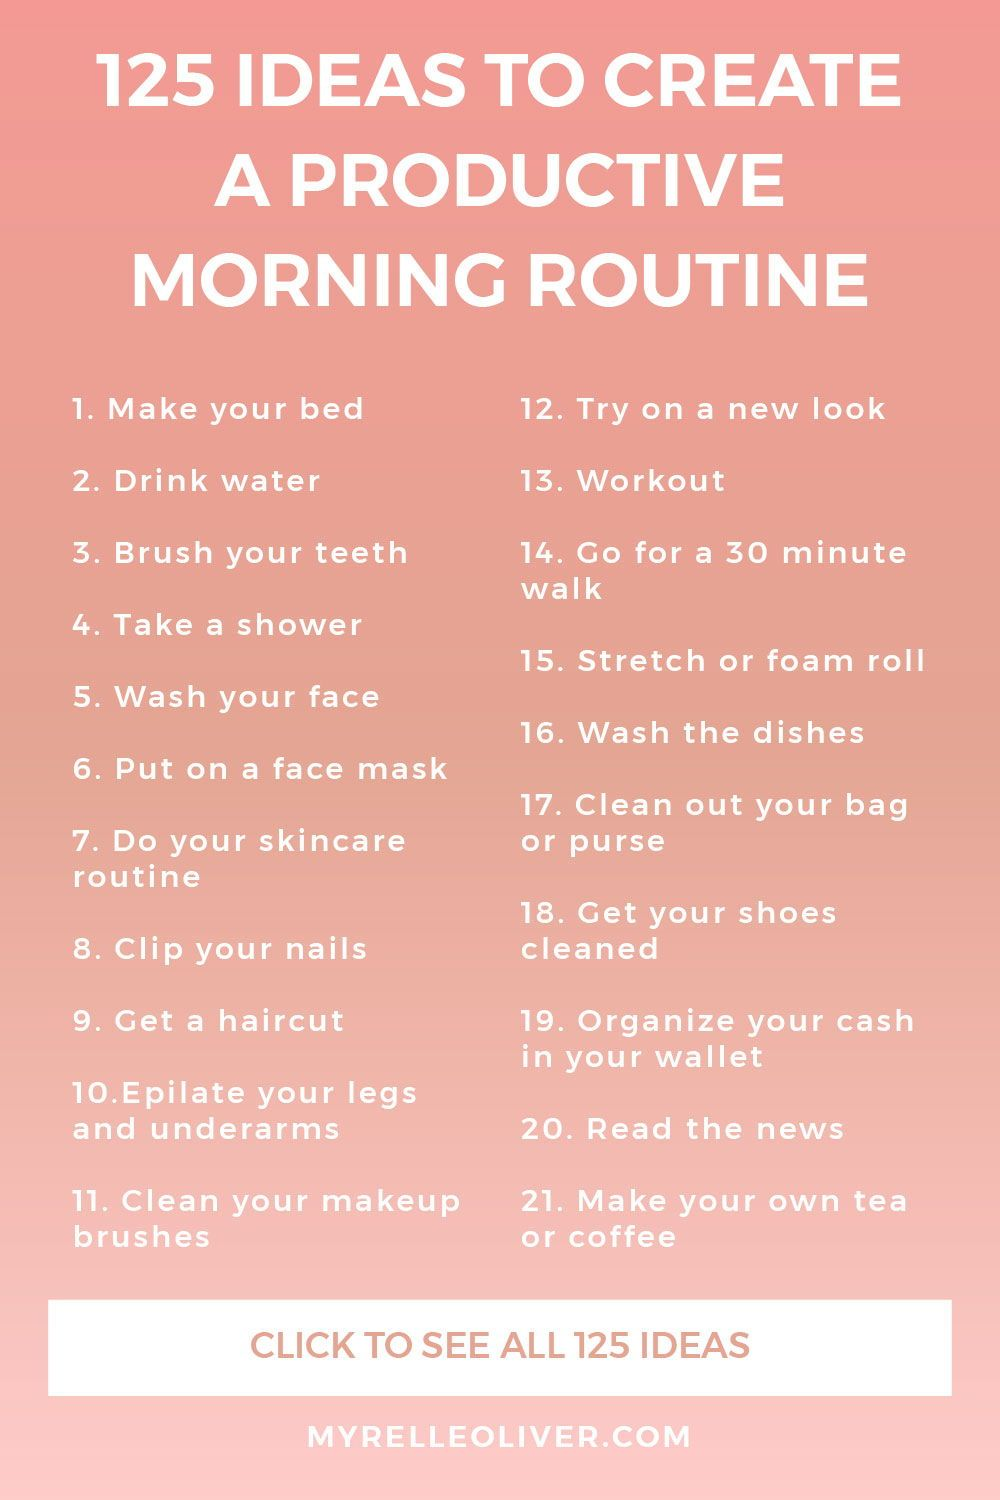 125 Ideas To Create A Productive Morning Routine | Myrelle Oliver #personalgrowth